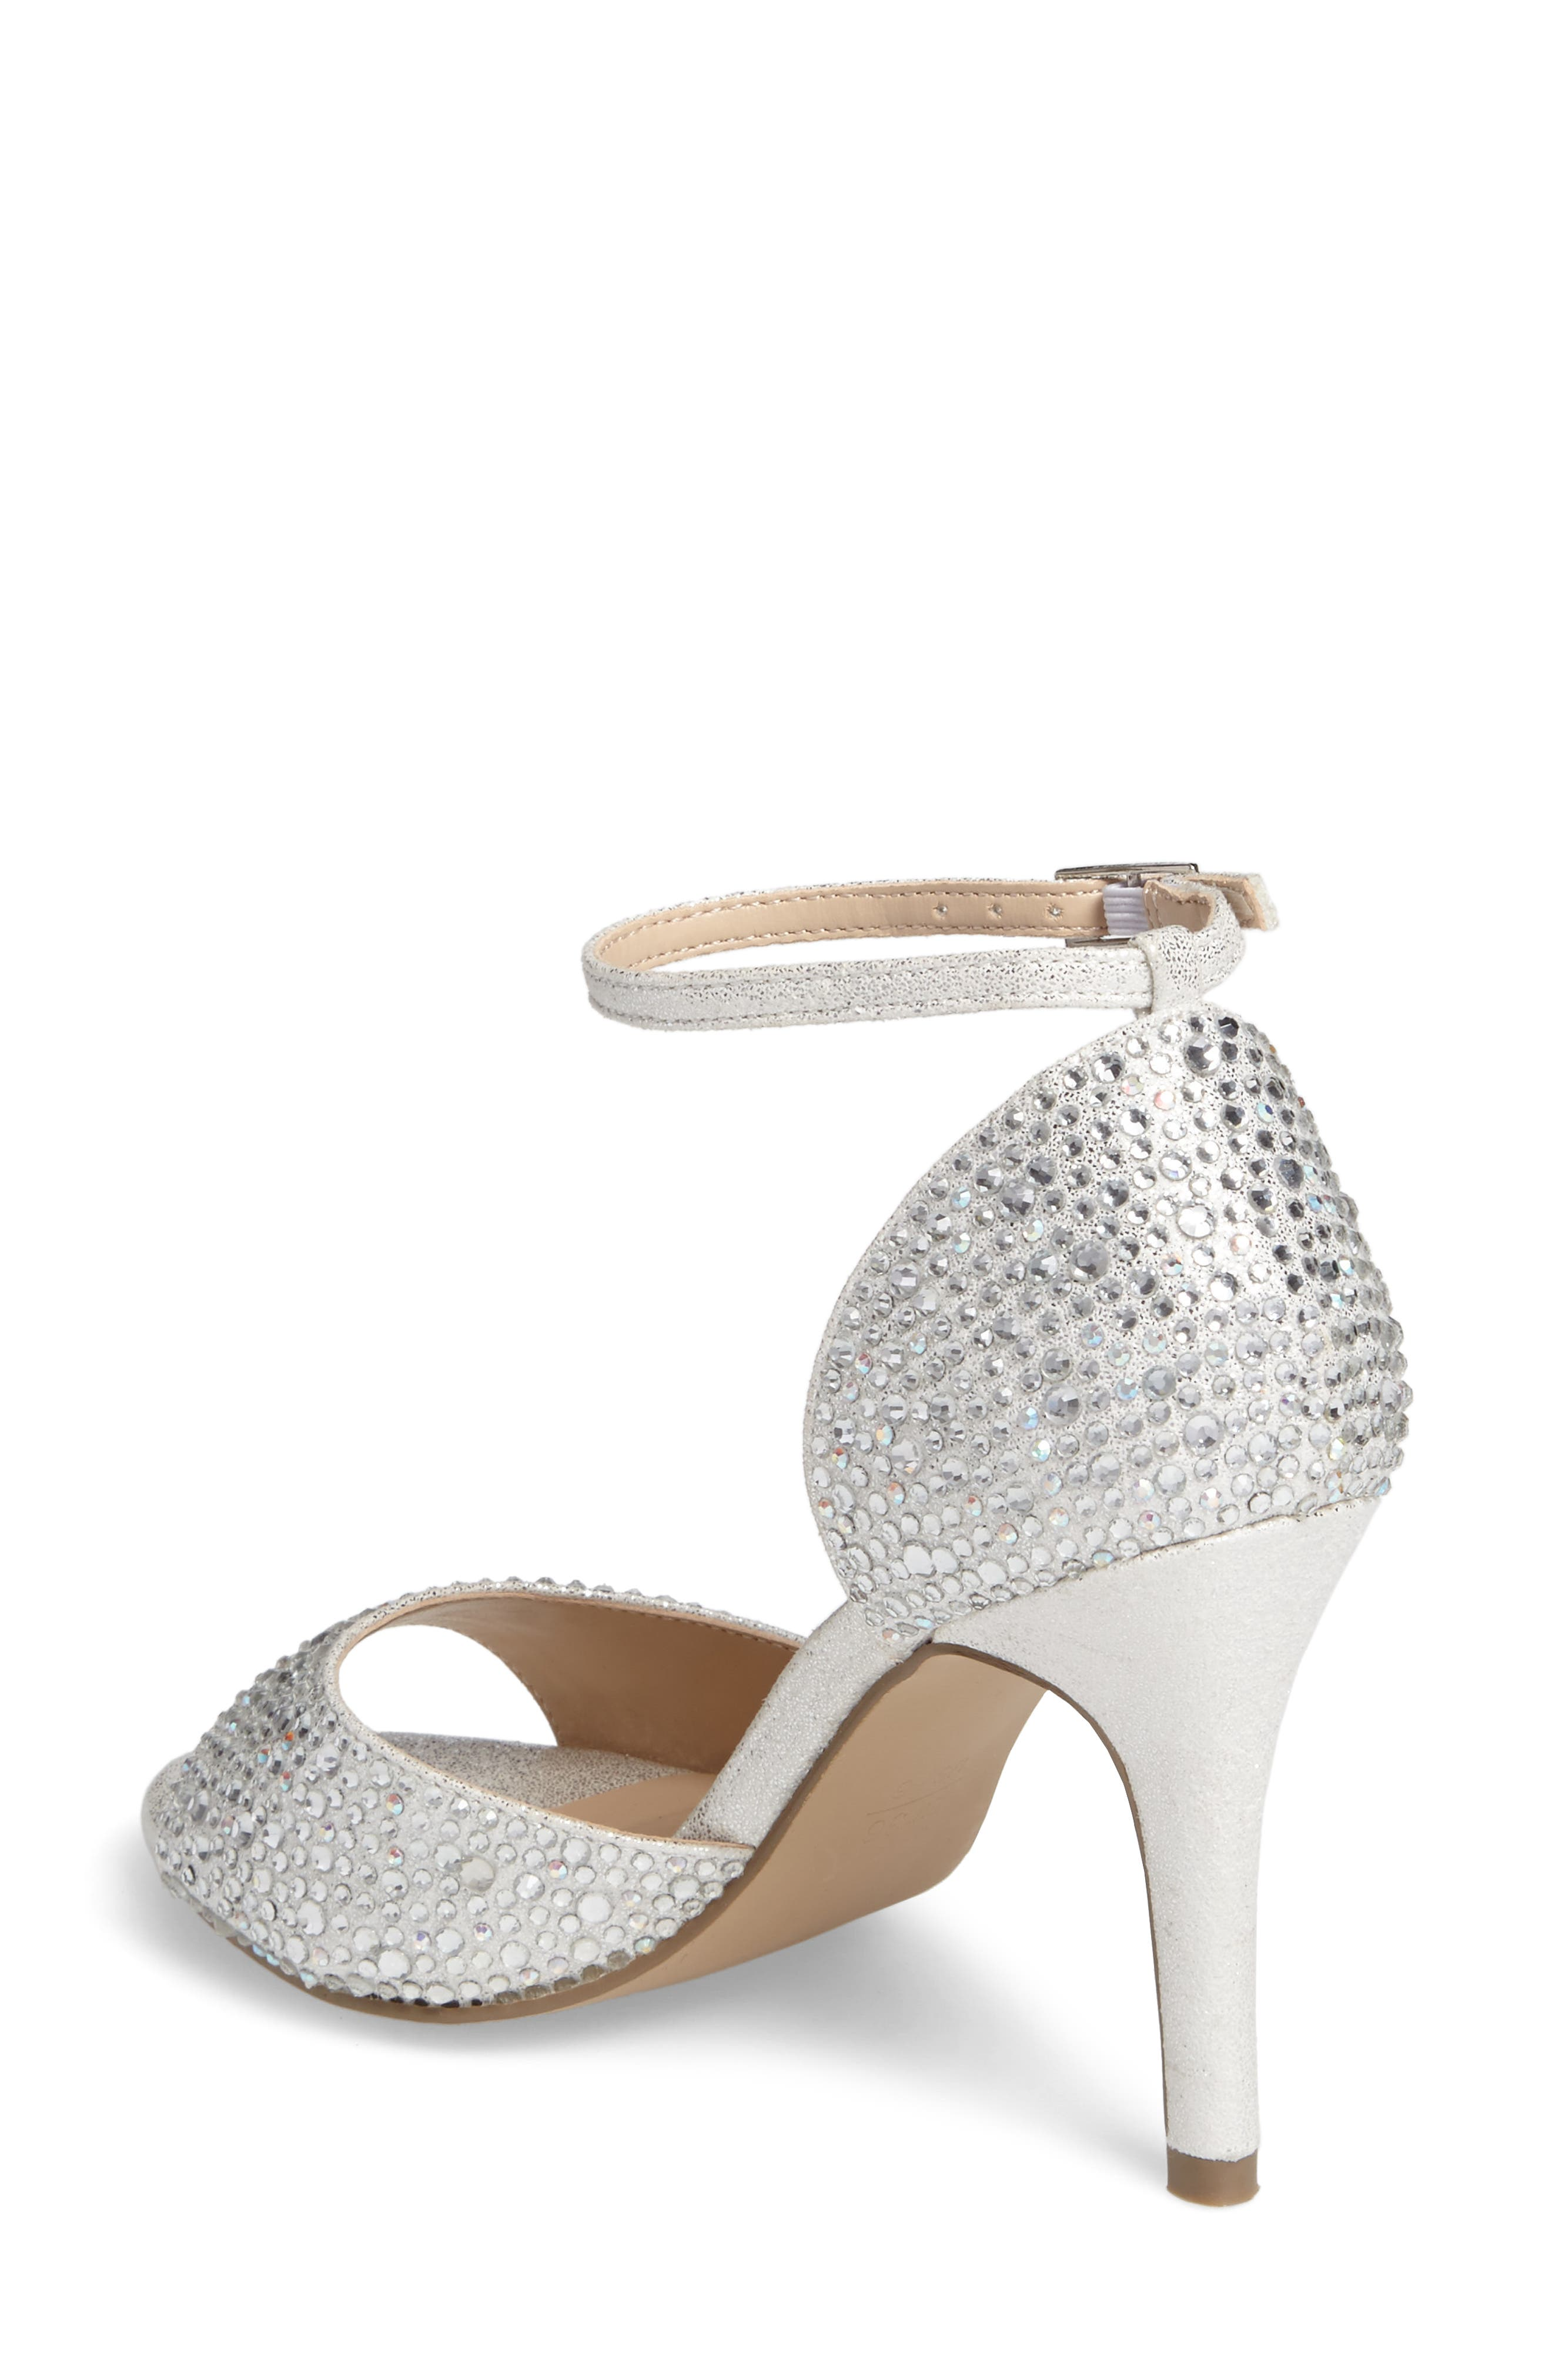 Mira Embellished Glitter Sandal,                             Alternate thumbnail 2, color,